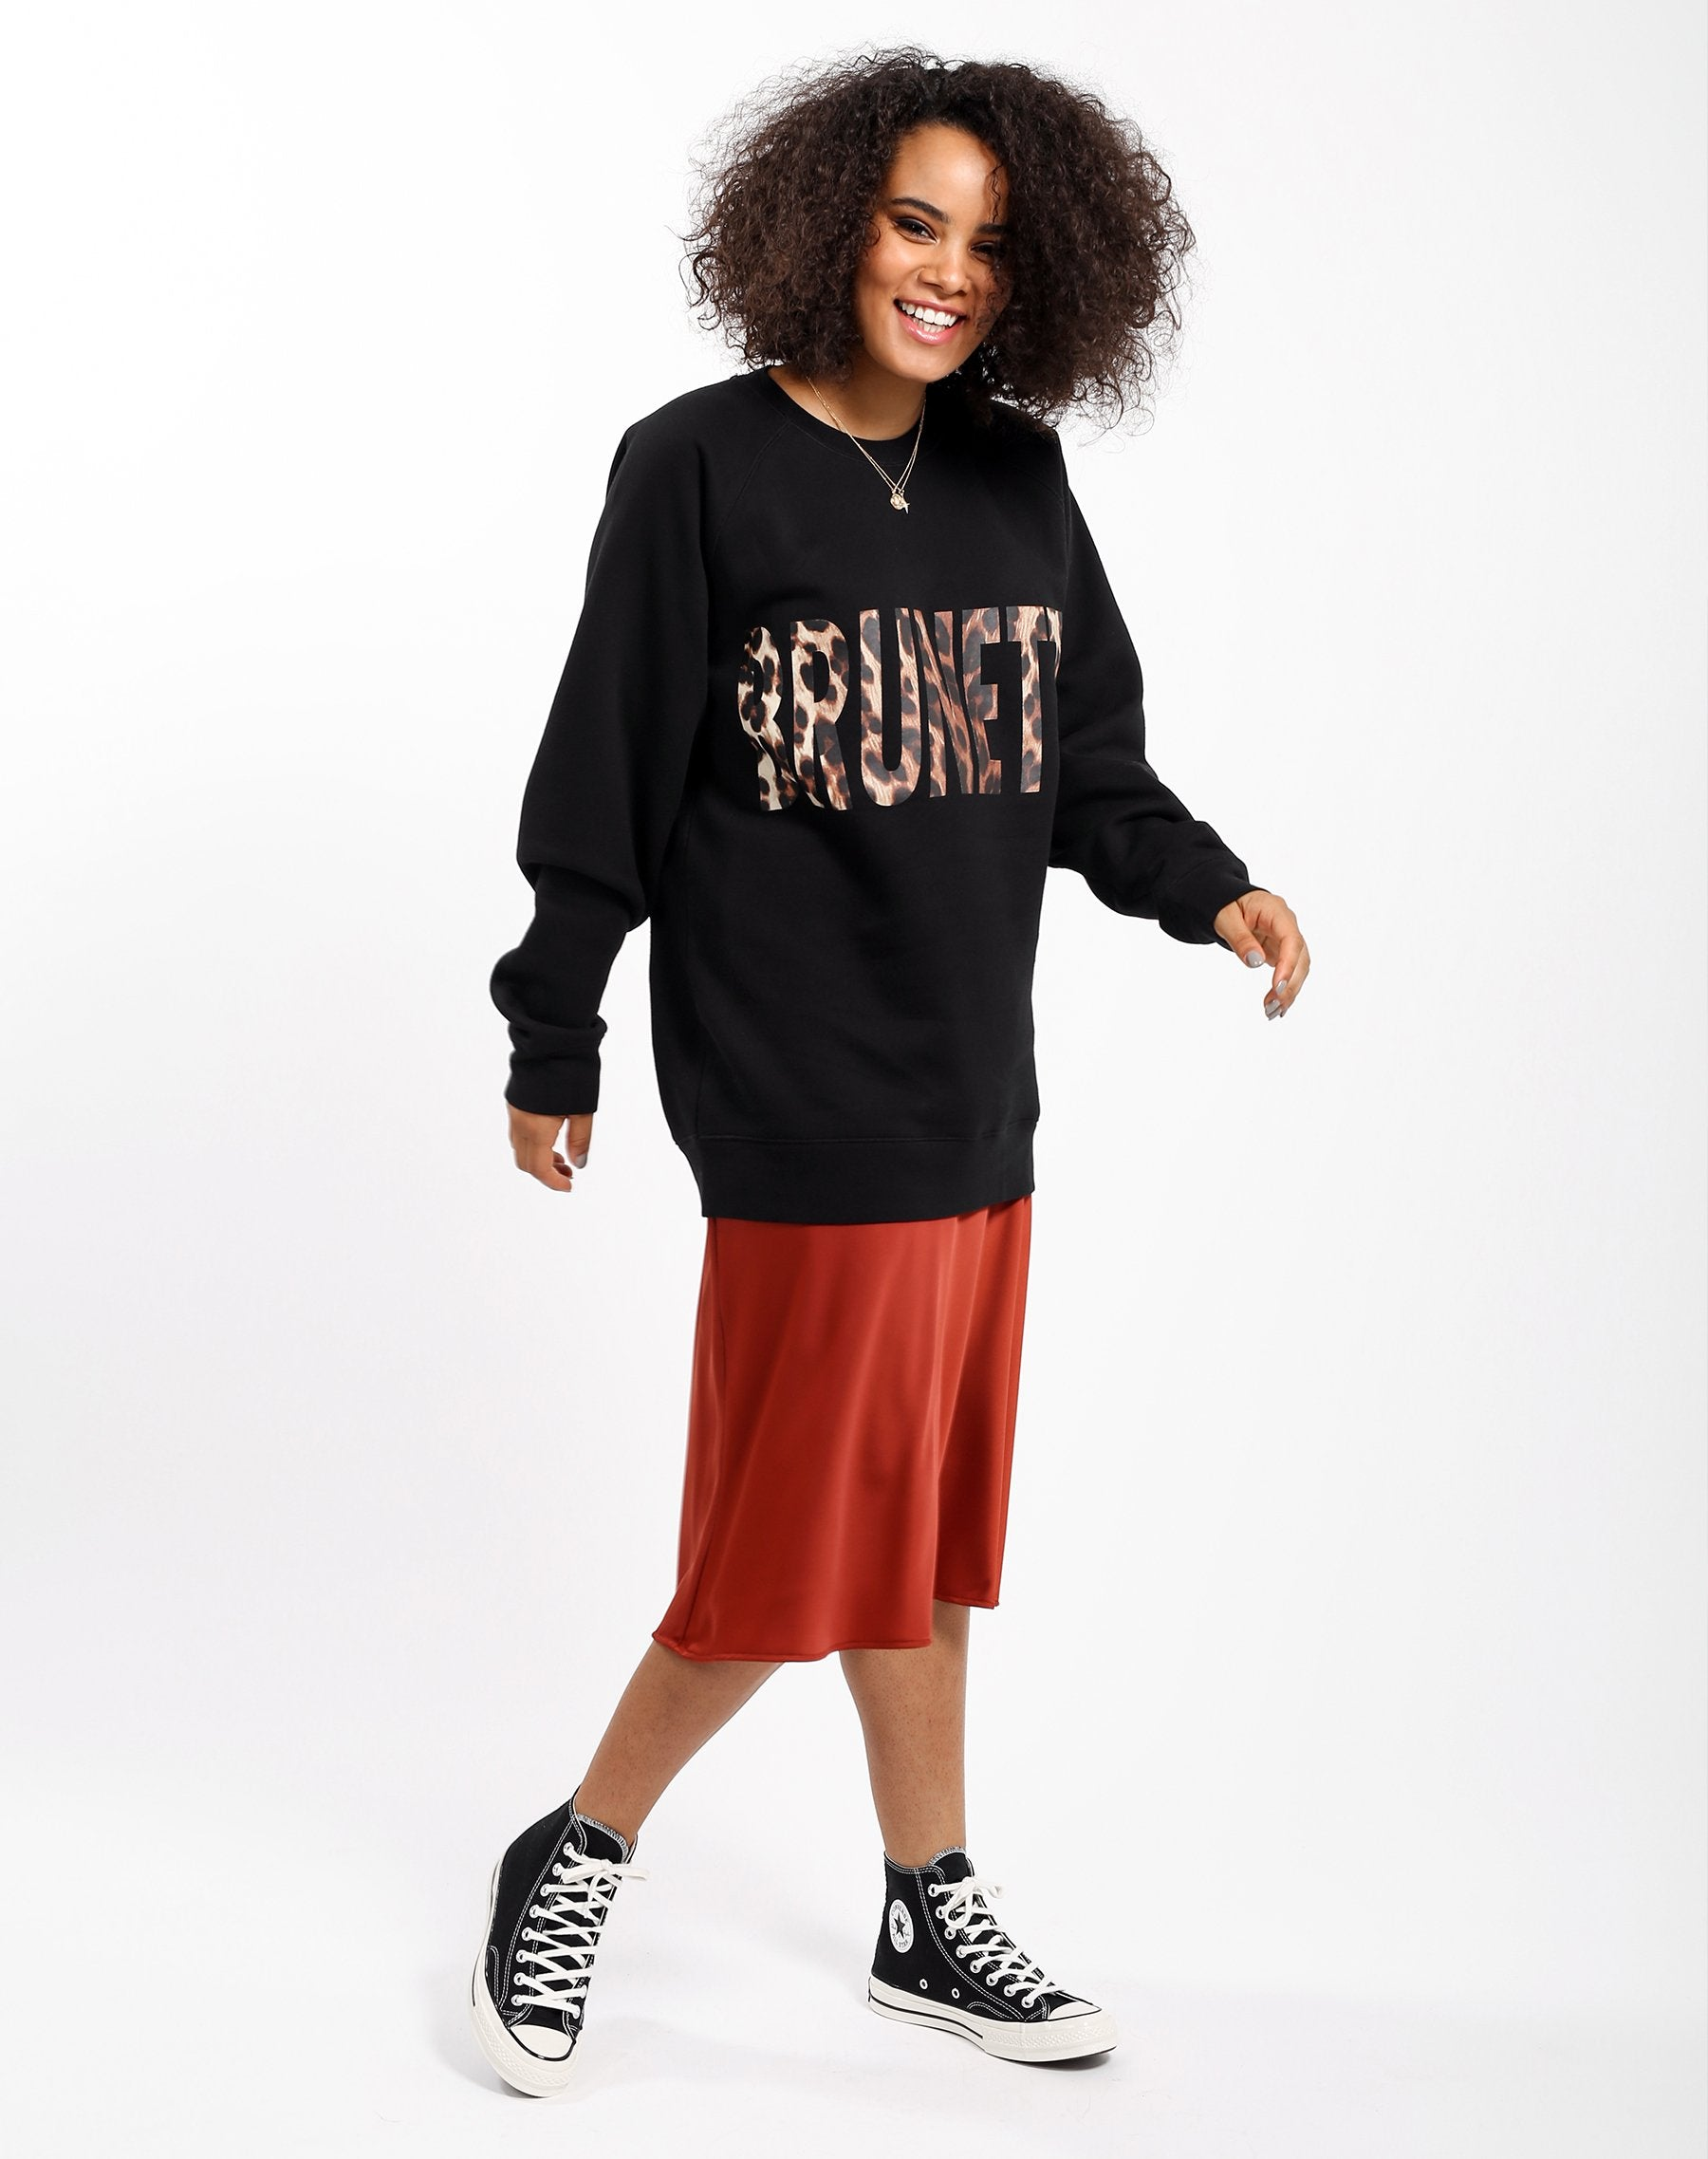 """BRUNETTE"" Big Sister Crew Neck Sweatshirt 